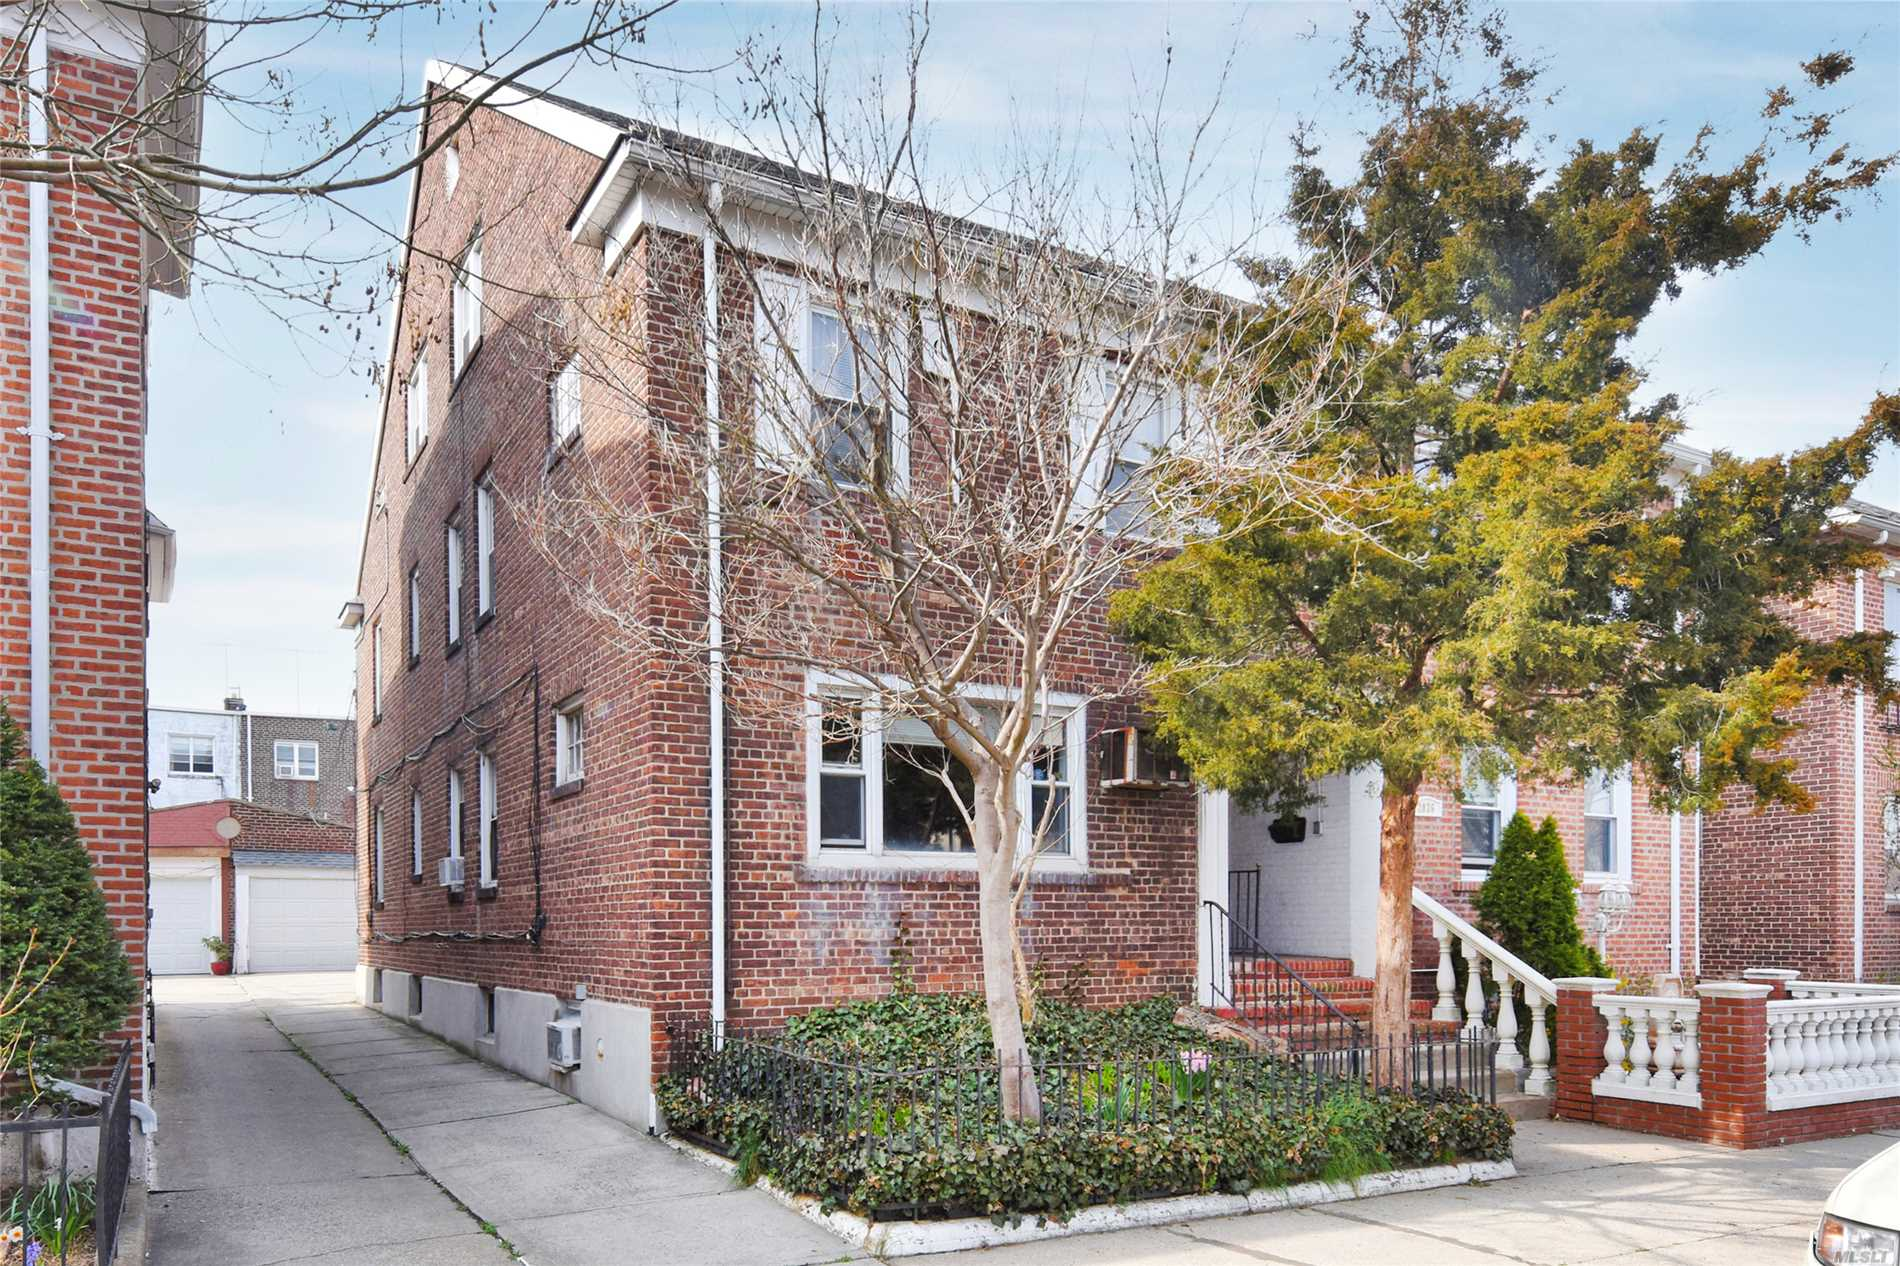 Beautiful Semi detached brick home in Ditmars!. This lovely two family has an owners duplex that includes 3 bedrooms, full bath, updated EIK w/ose, Formal Living Rm & Dining Rm & an Office. The first level hosts a lovely 2 bedroom 1 full bath apartment. Detached 2 car garage, backyard, hardwood floors, New Boiler & hot water heater. Zoned for P.S. 122. Close proximity to the Ditmars train Station, Zoned for PS 122.